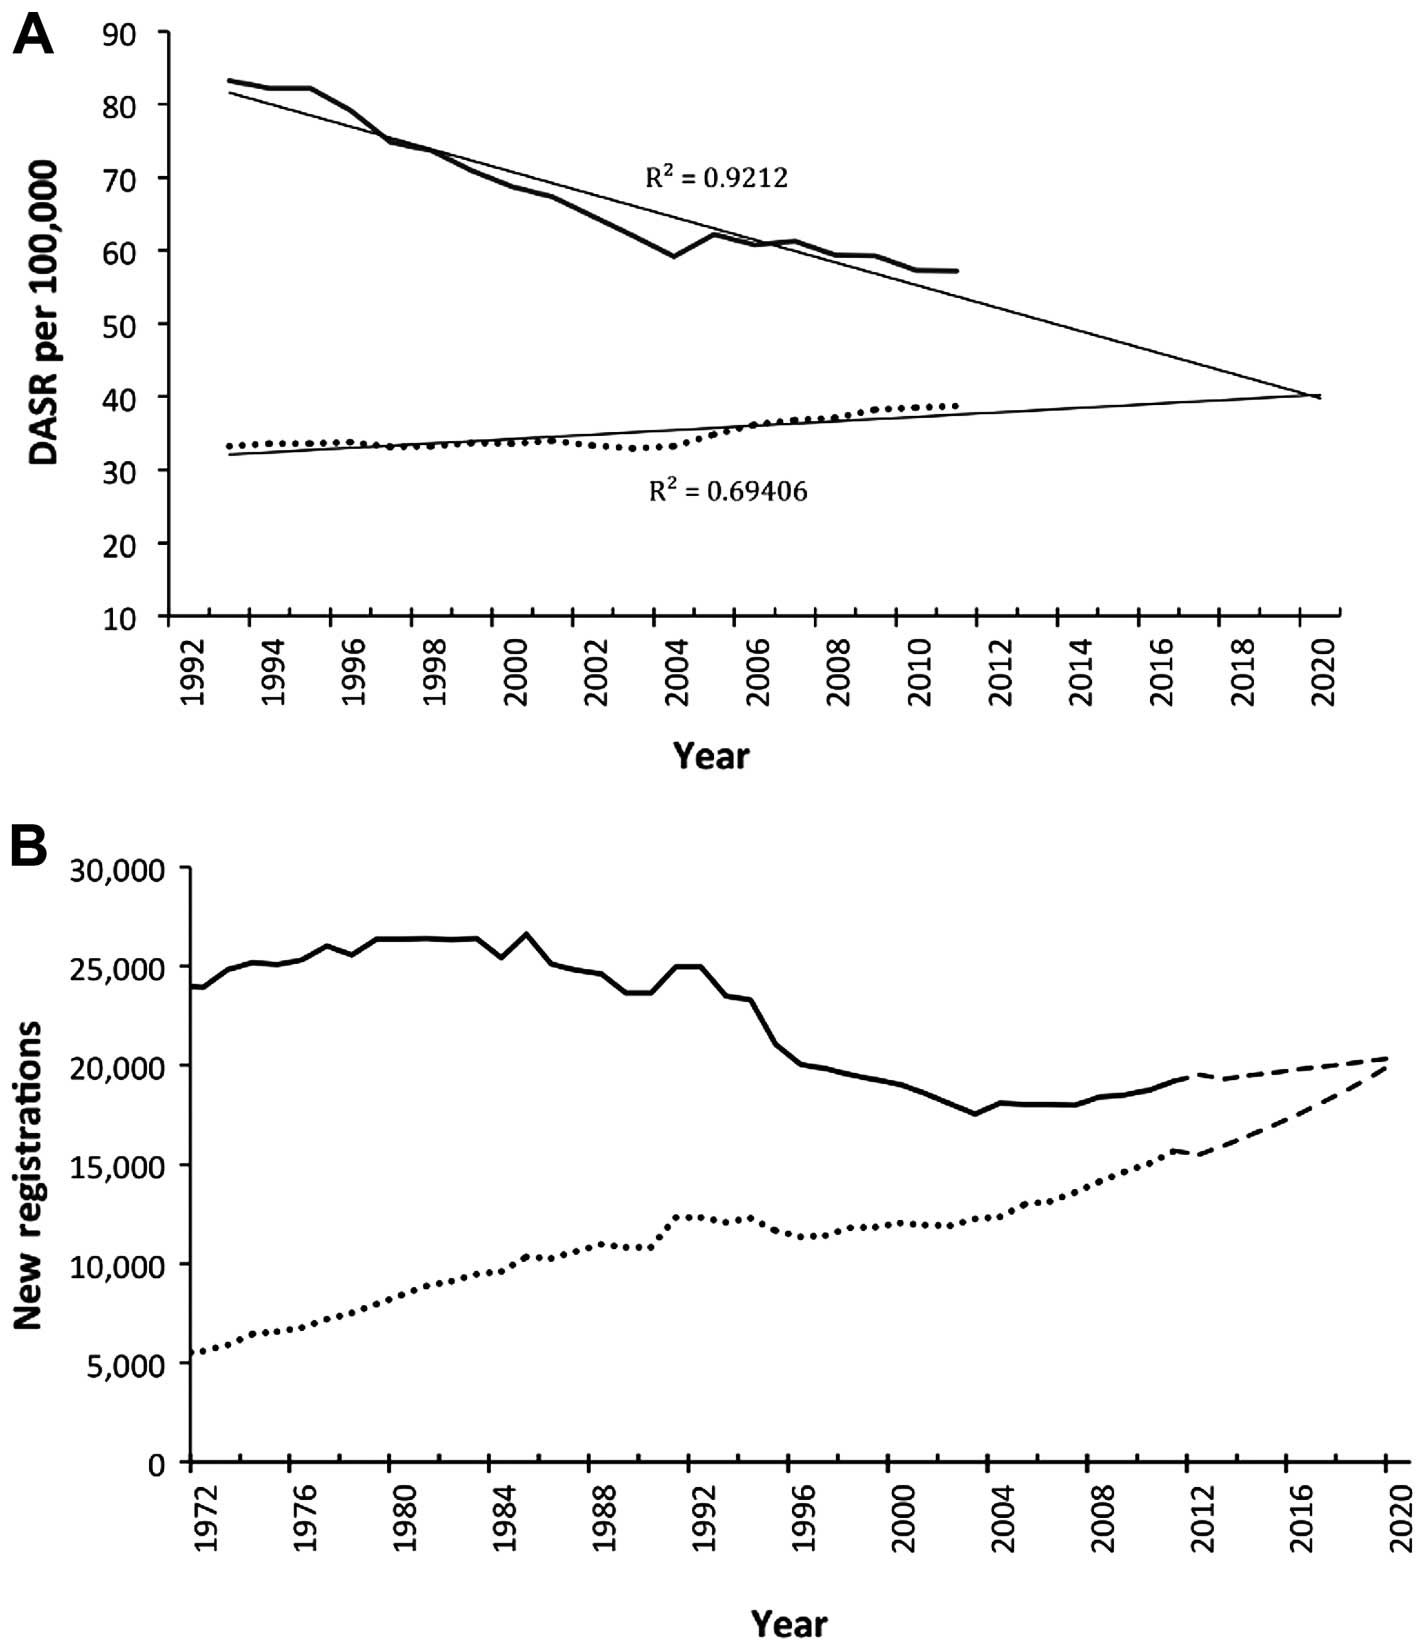 Lung cancer trend in England for the period of 2002 to 2011 and